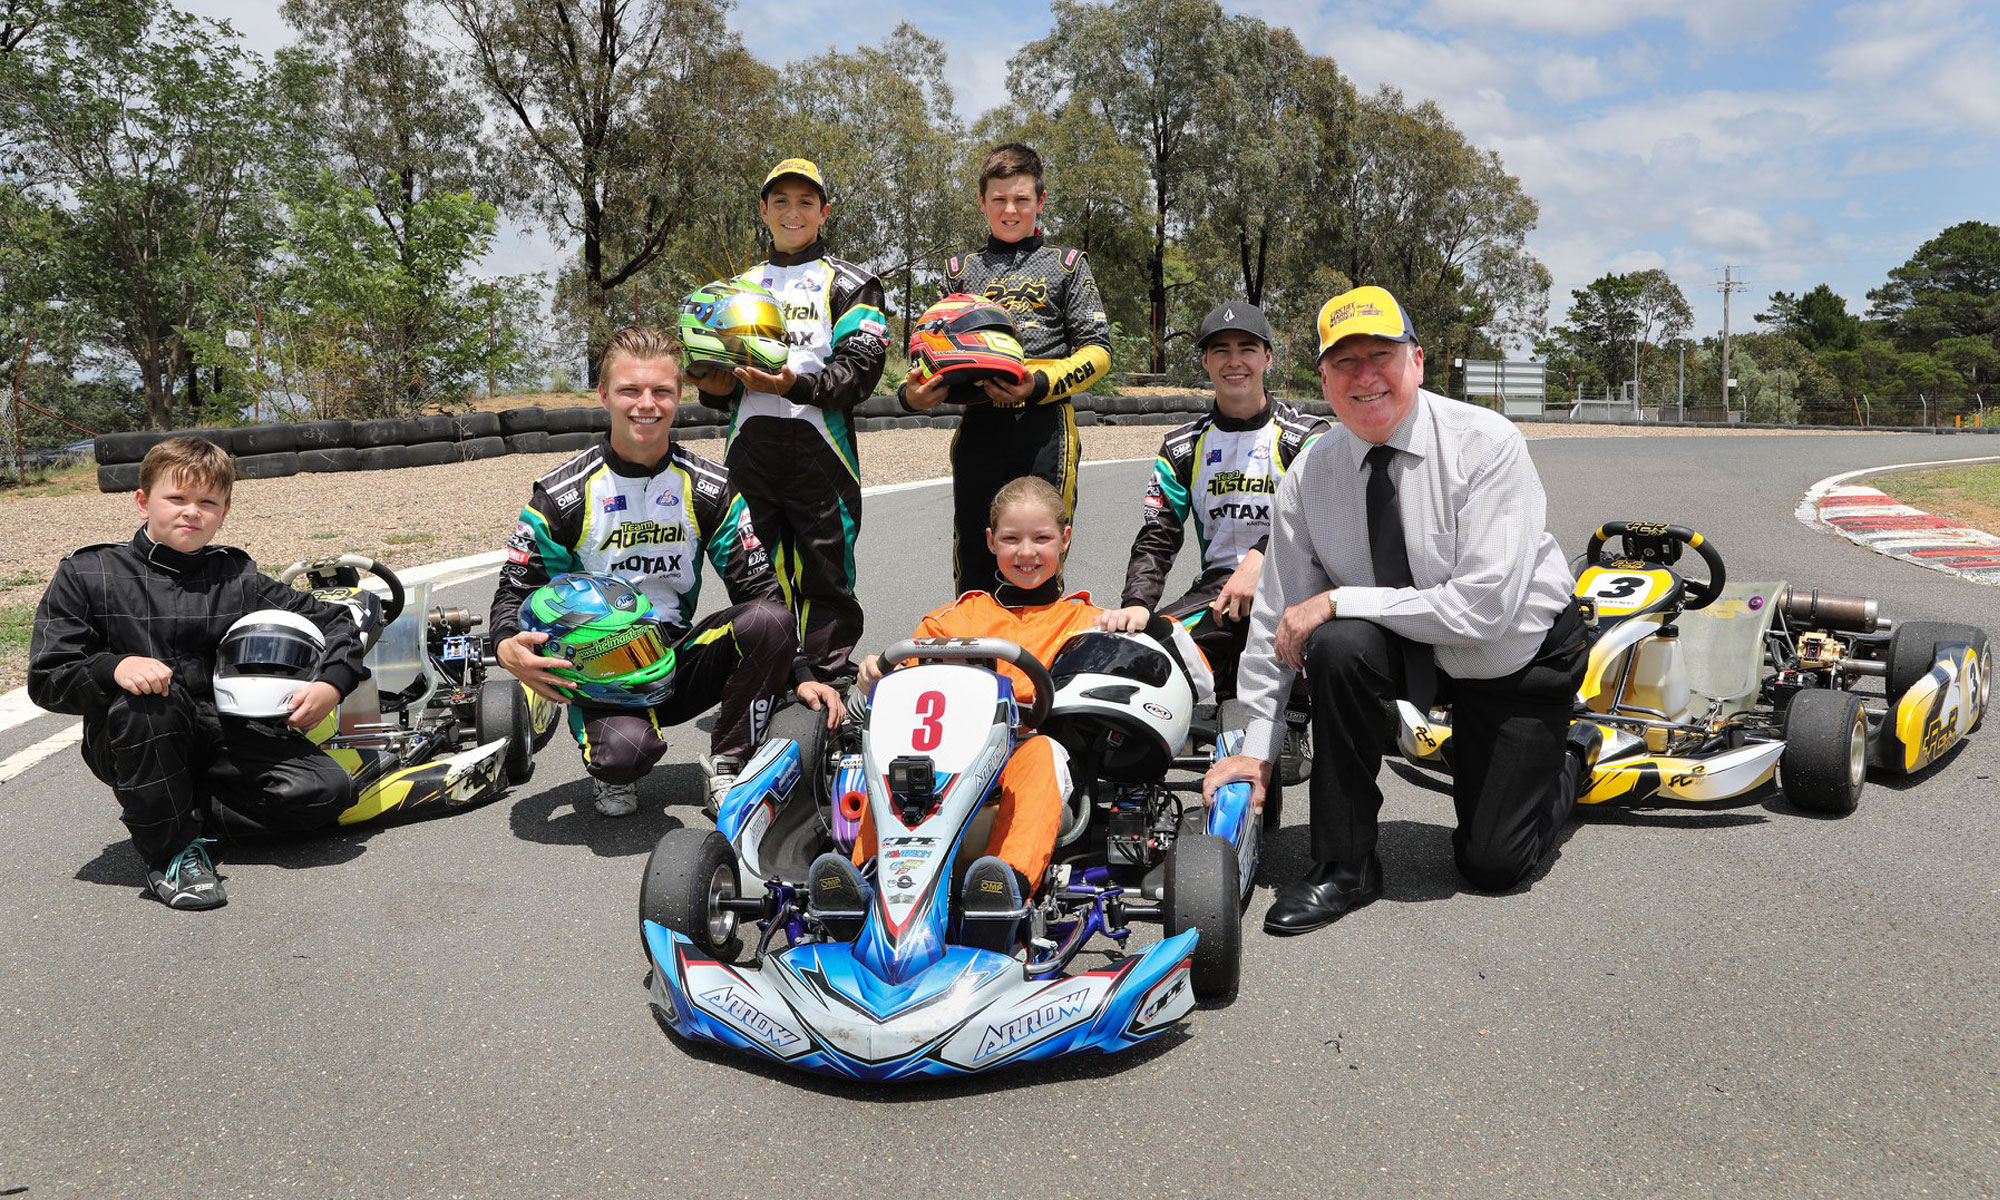 Canberra Kart Racing Club